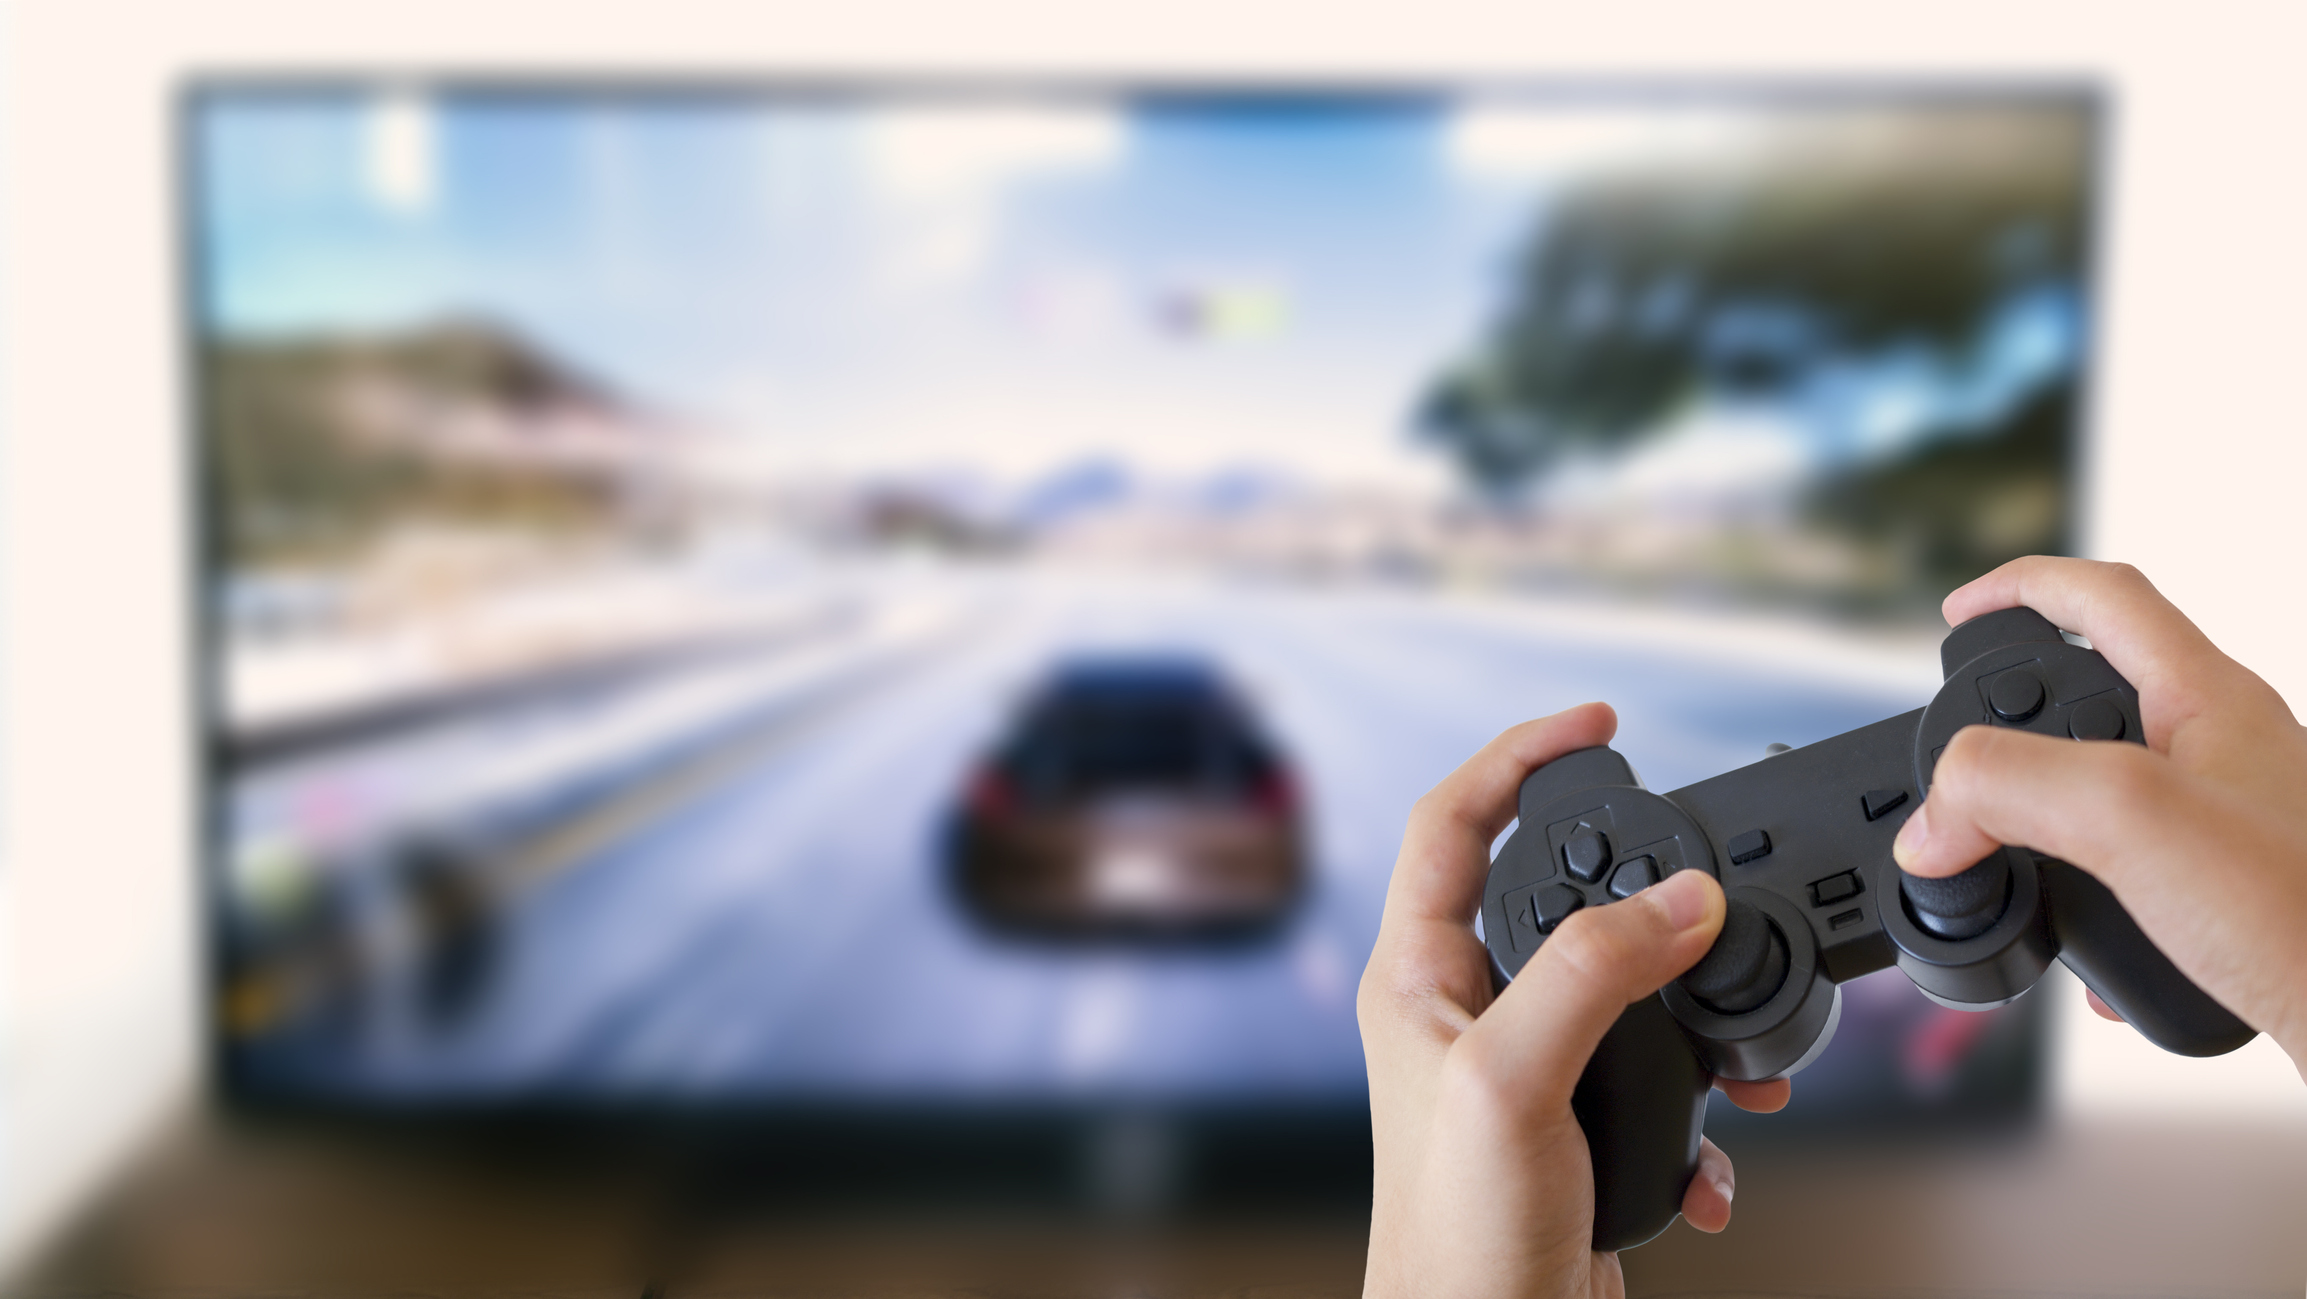 Boy holding game console with car racing game on 4K TV in background